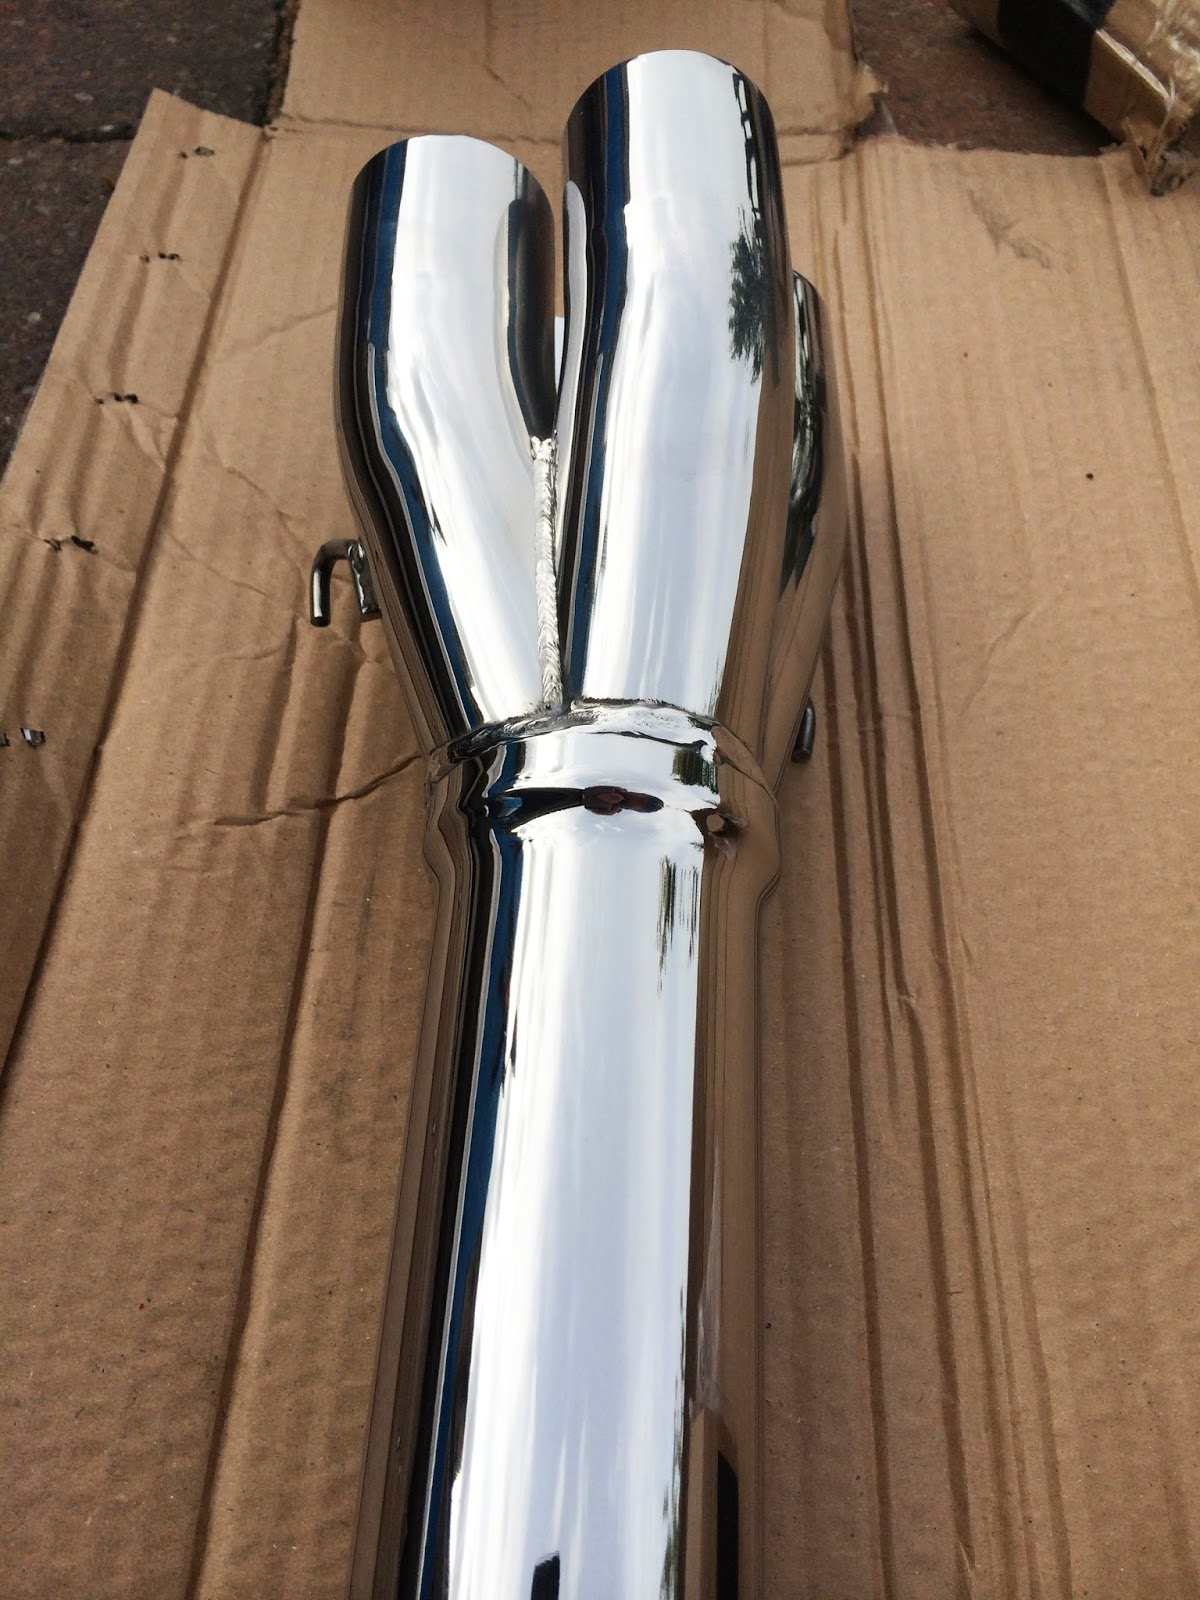 Freshly polished Caterham R500 Duratec Cat Bypass Pipe.